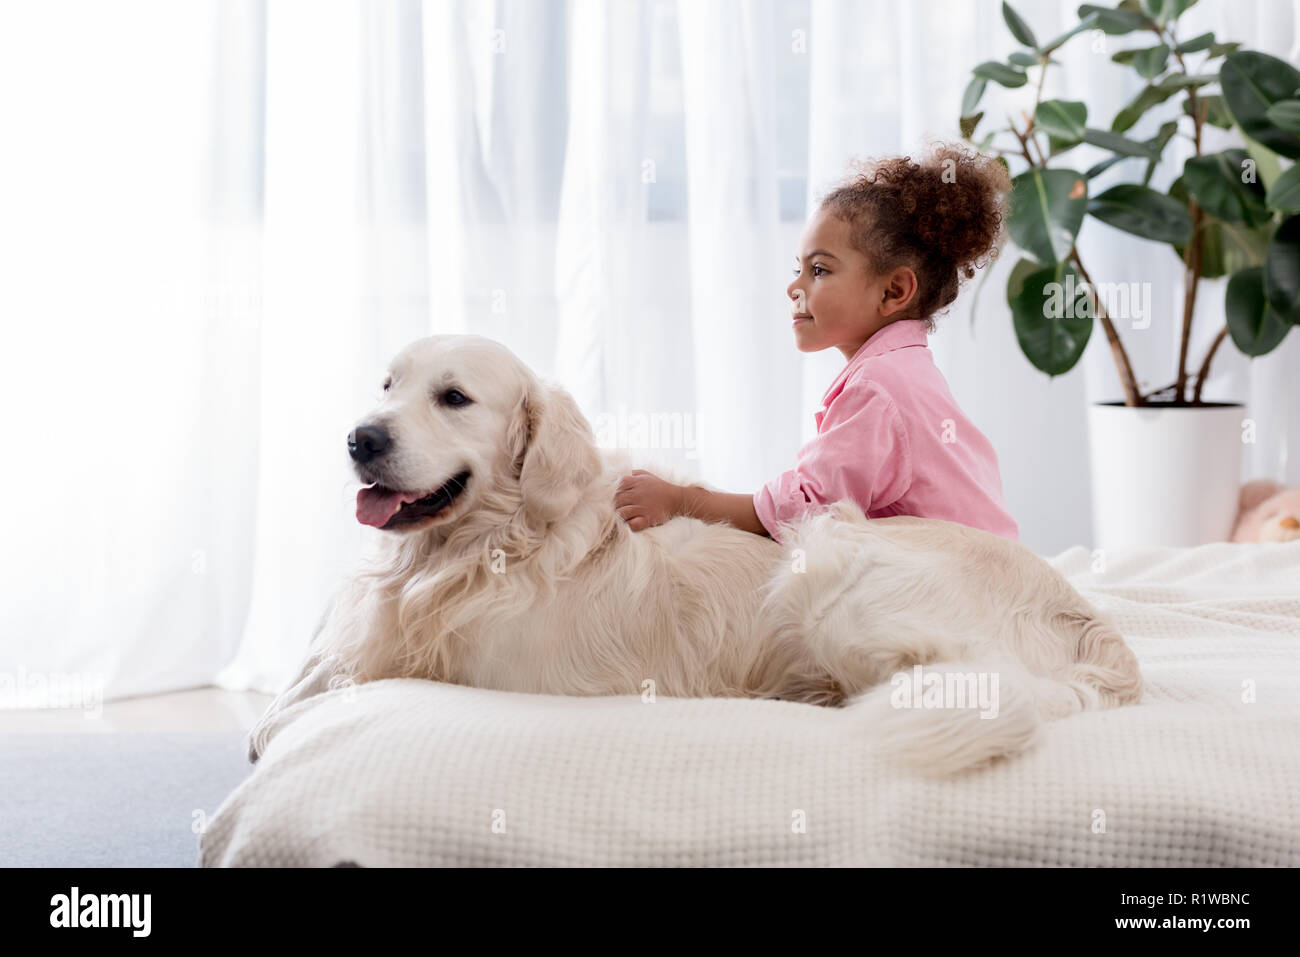 Adorable african american kid sitting on the bed on the side of her golden retriever - Stock Image